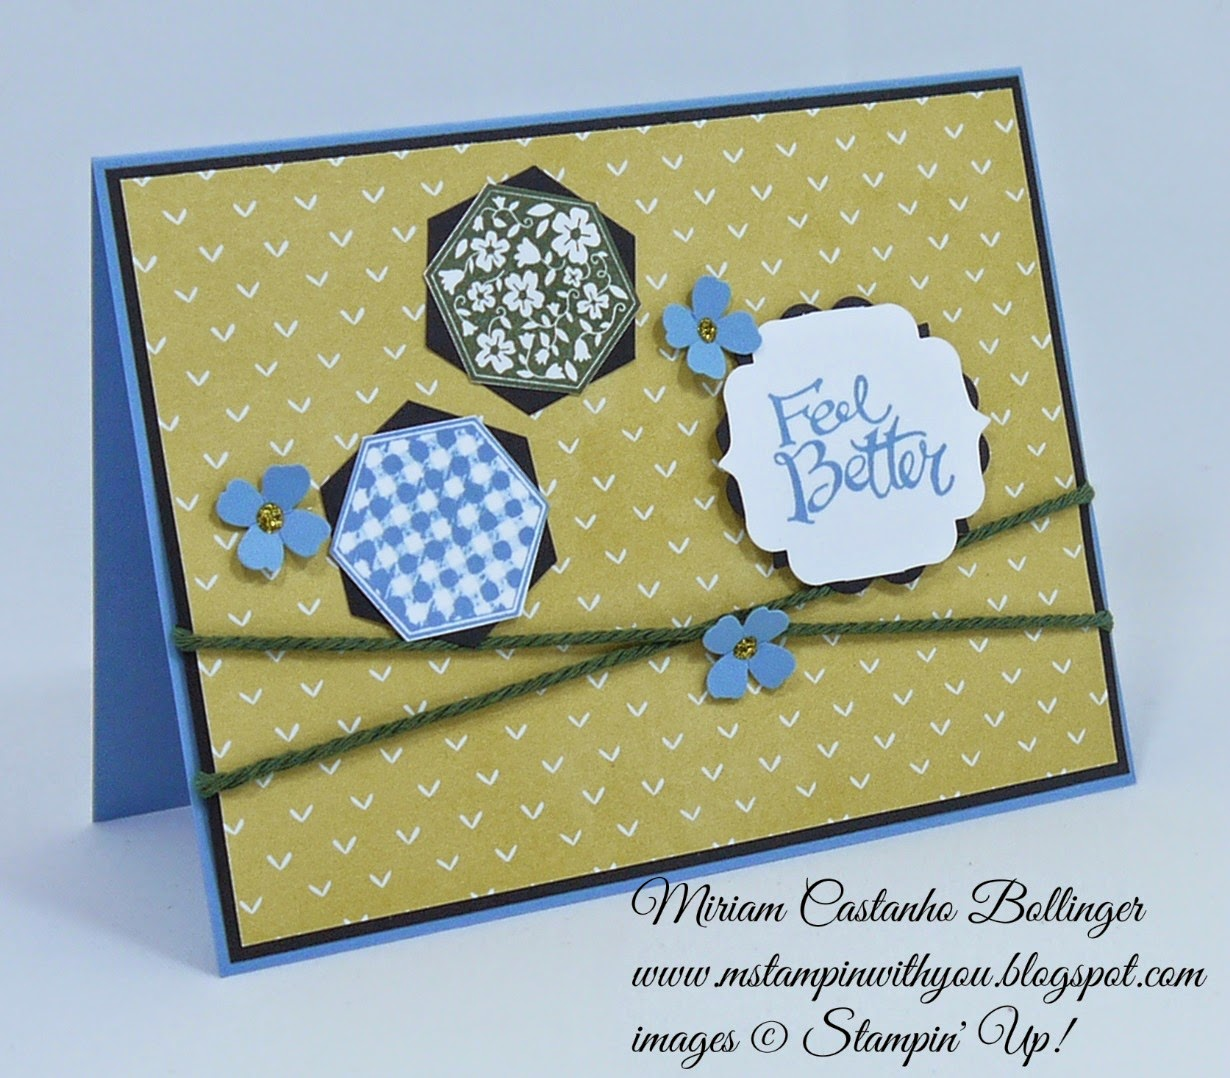 Miriam Castanho Bollinger, #mstampinwithyou, stampin up, demonstrator, dsc127, lullaby dsp, six-sided sampler stamp set, sassy salutations, hexagon punch, itty bitty accents punch, label bracket punch, get well, su